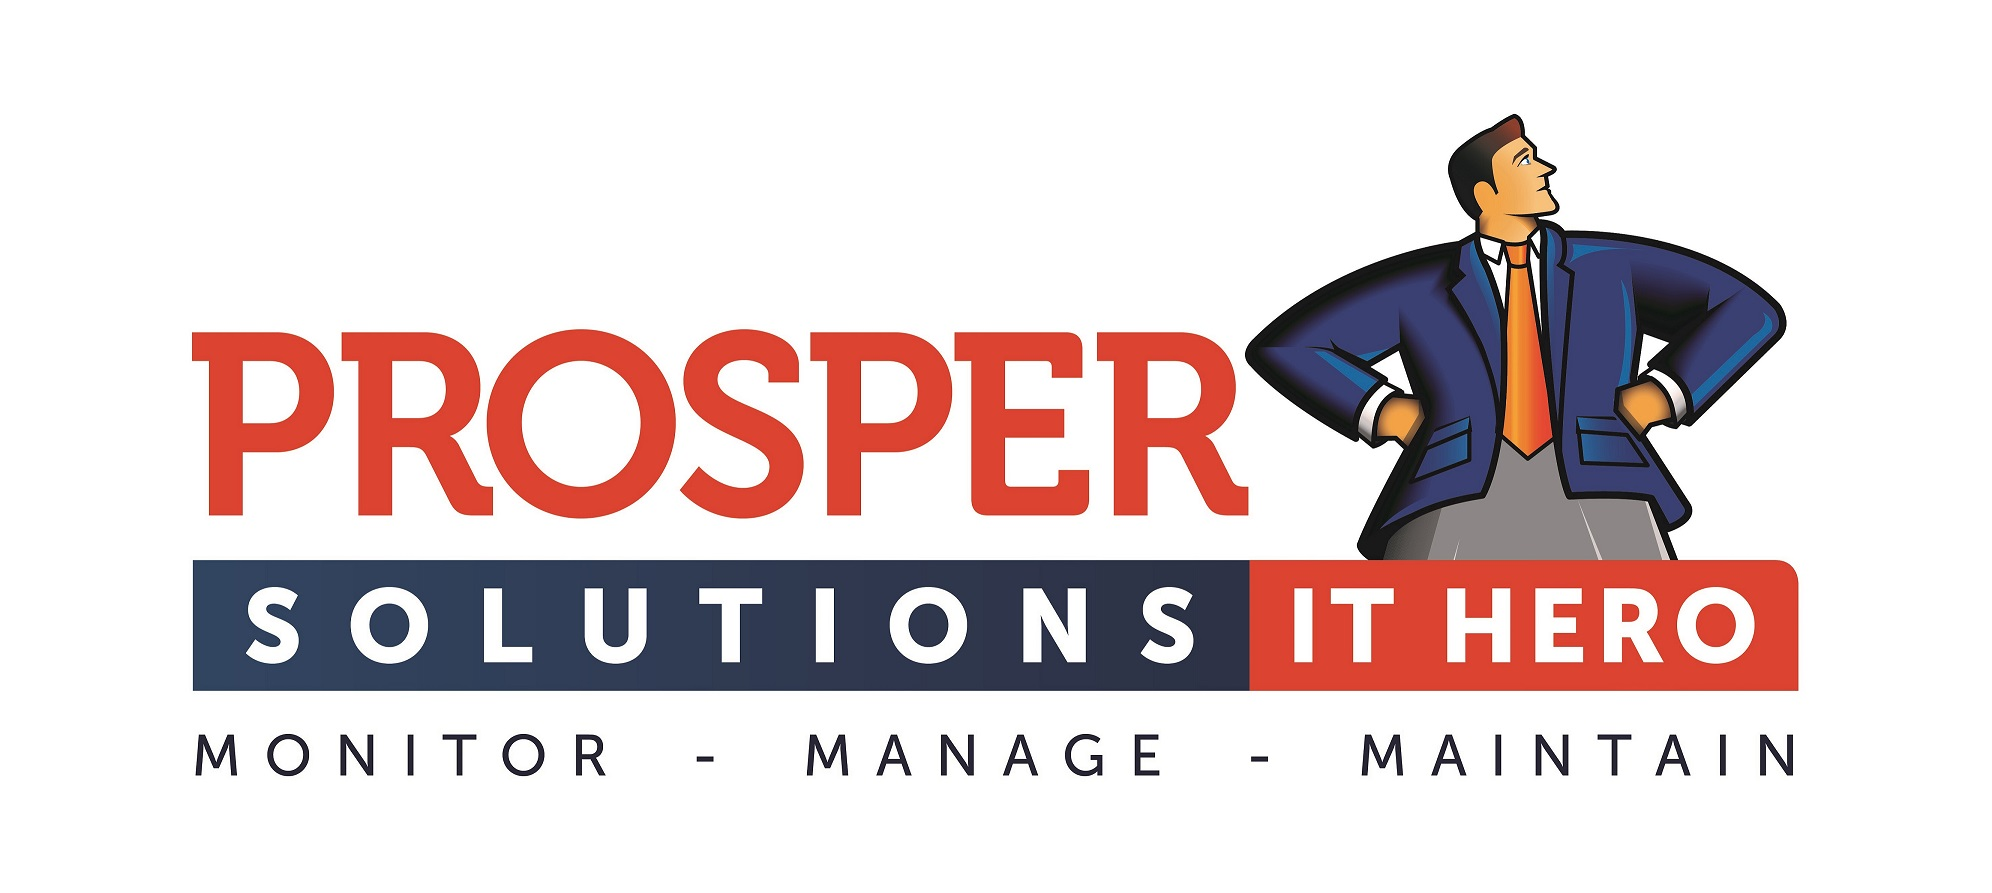 Prosper Solutions and IT Hero